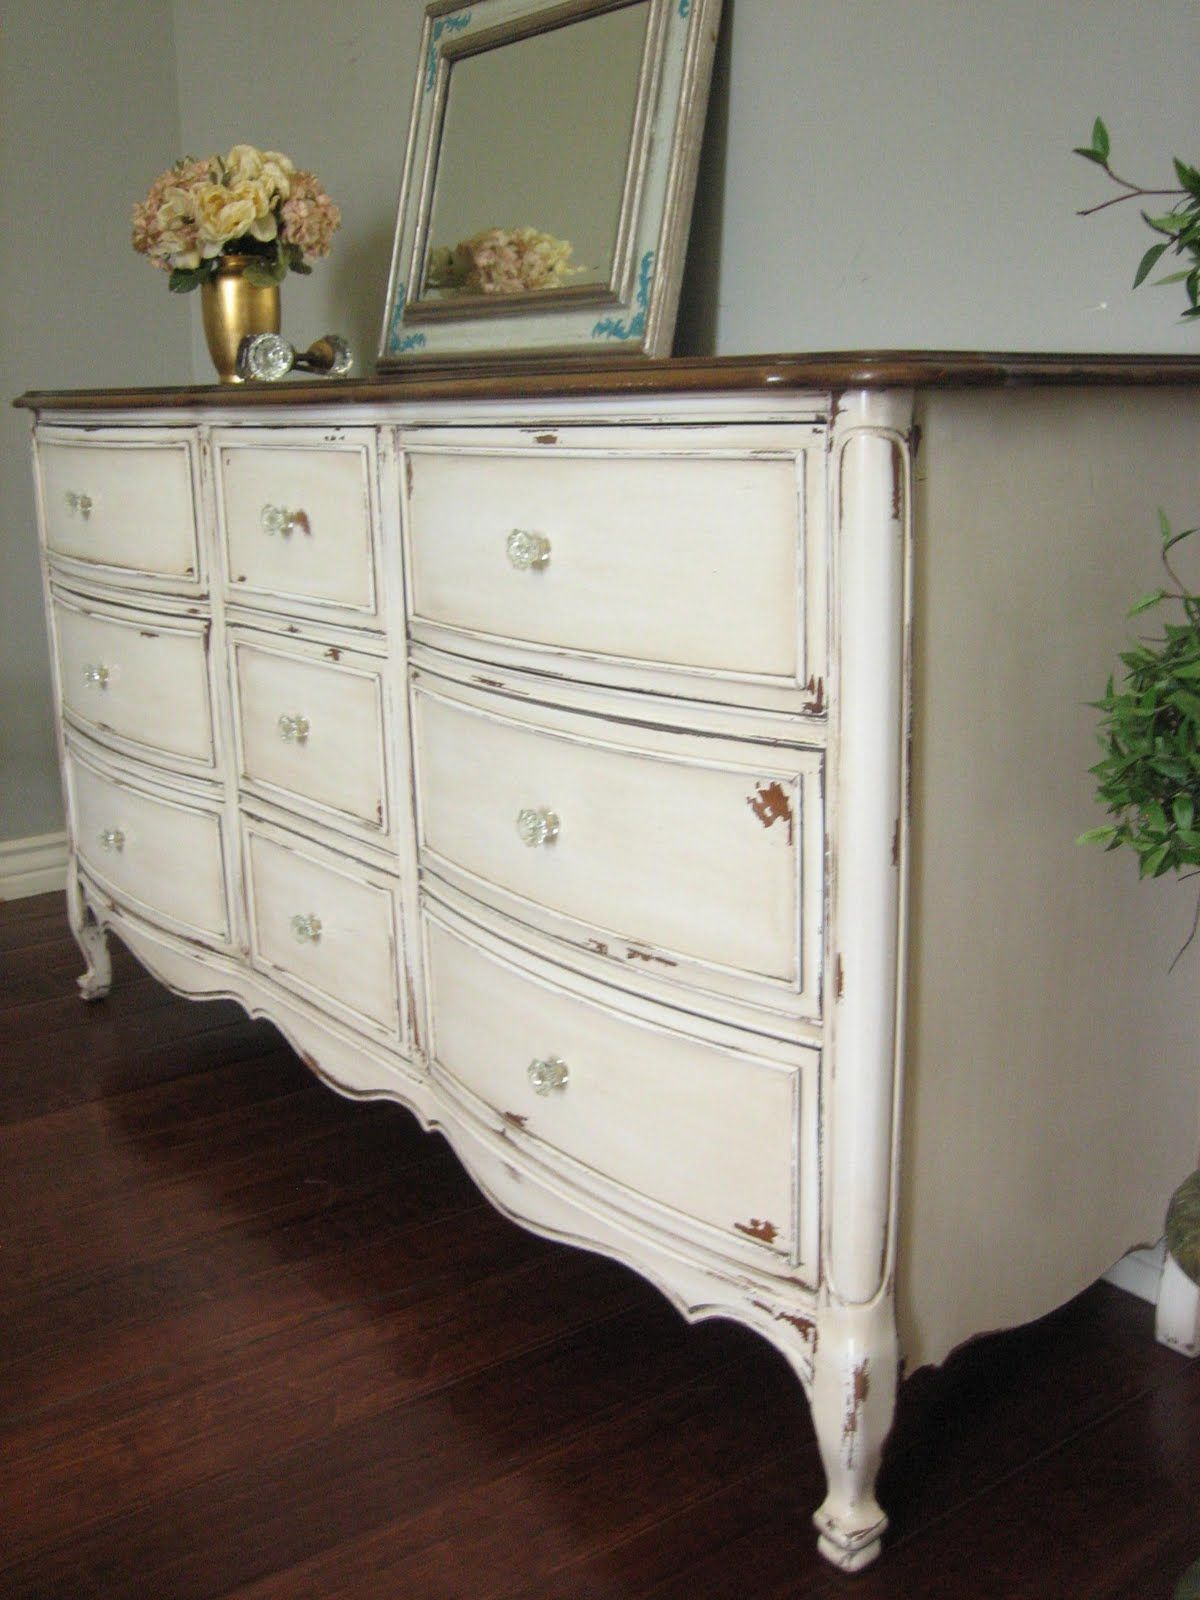 Sold solid wood dresser in an antiqued creamy white - Wooden art mobili ...